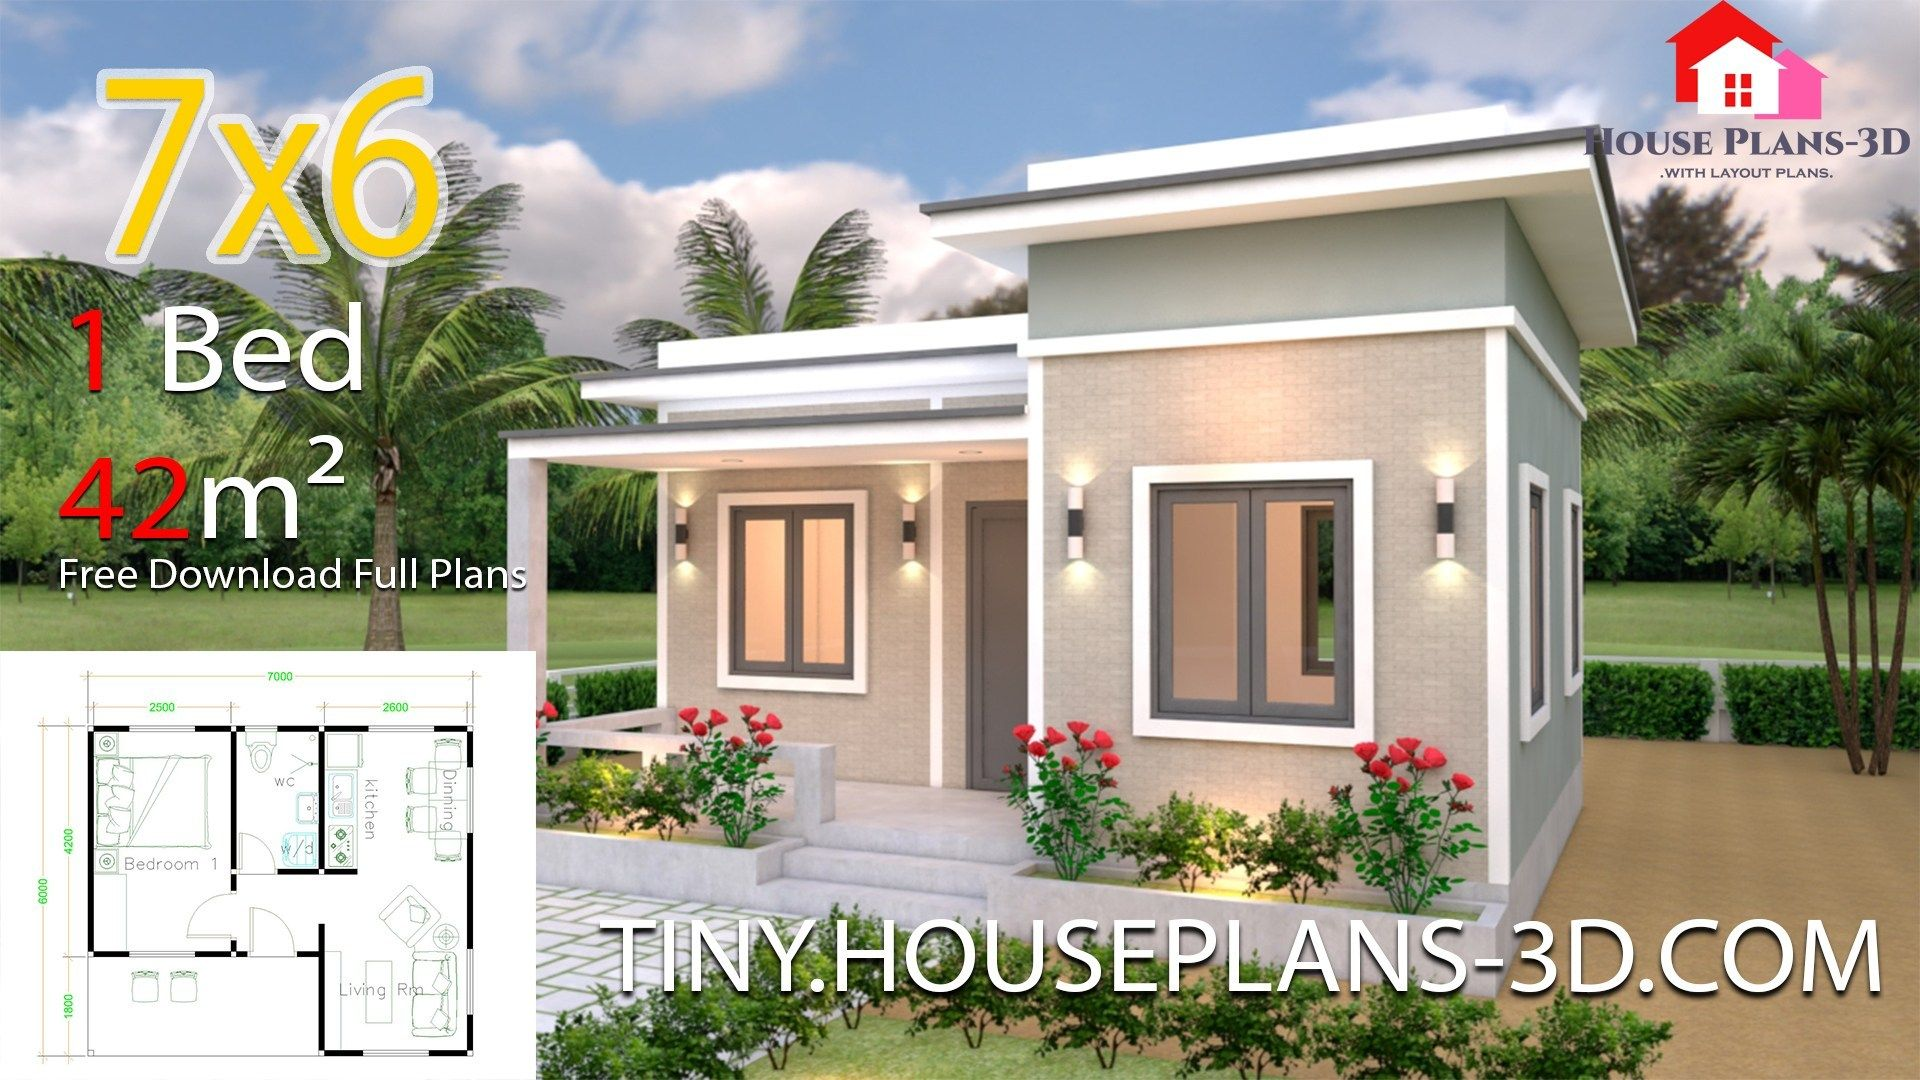 Tiny House Plans 7x6 With One Bedroom Flat Roof Tiny House Plans Small House Design Plans One Bedroom House Plans One Bedroom House